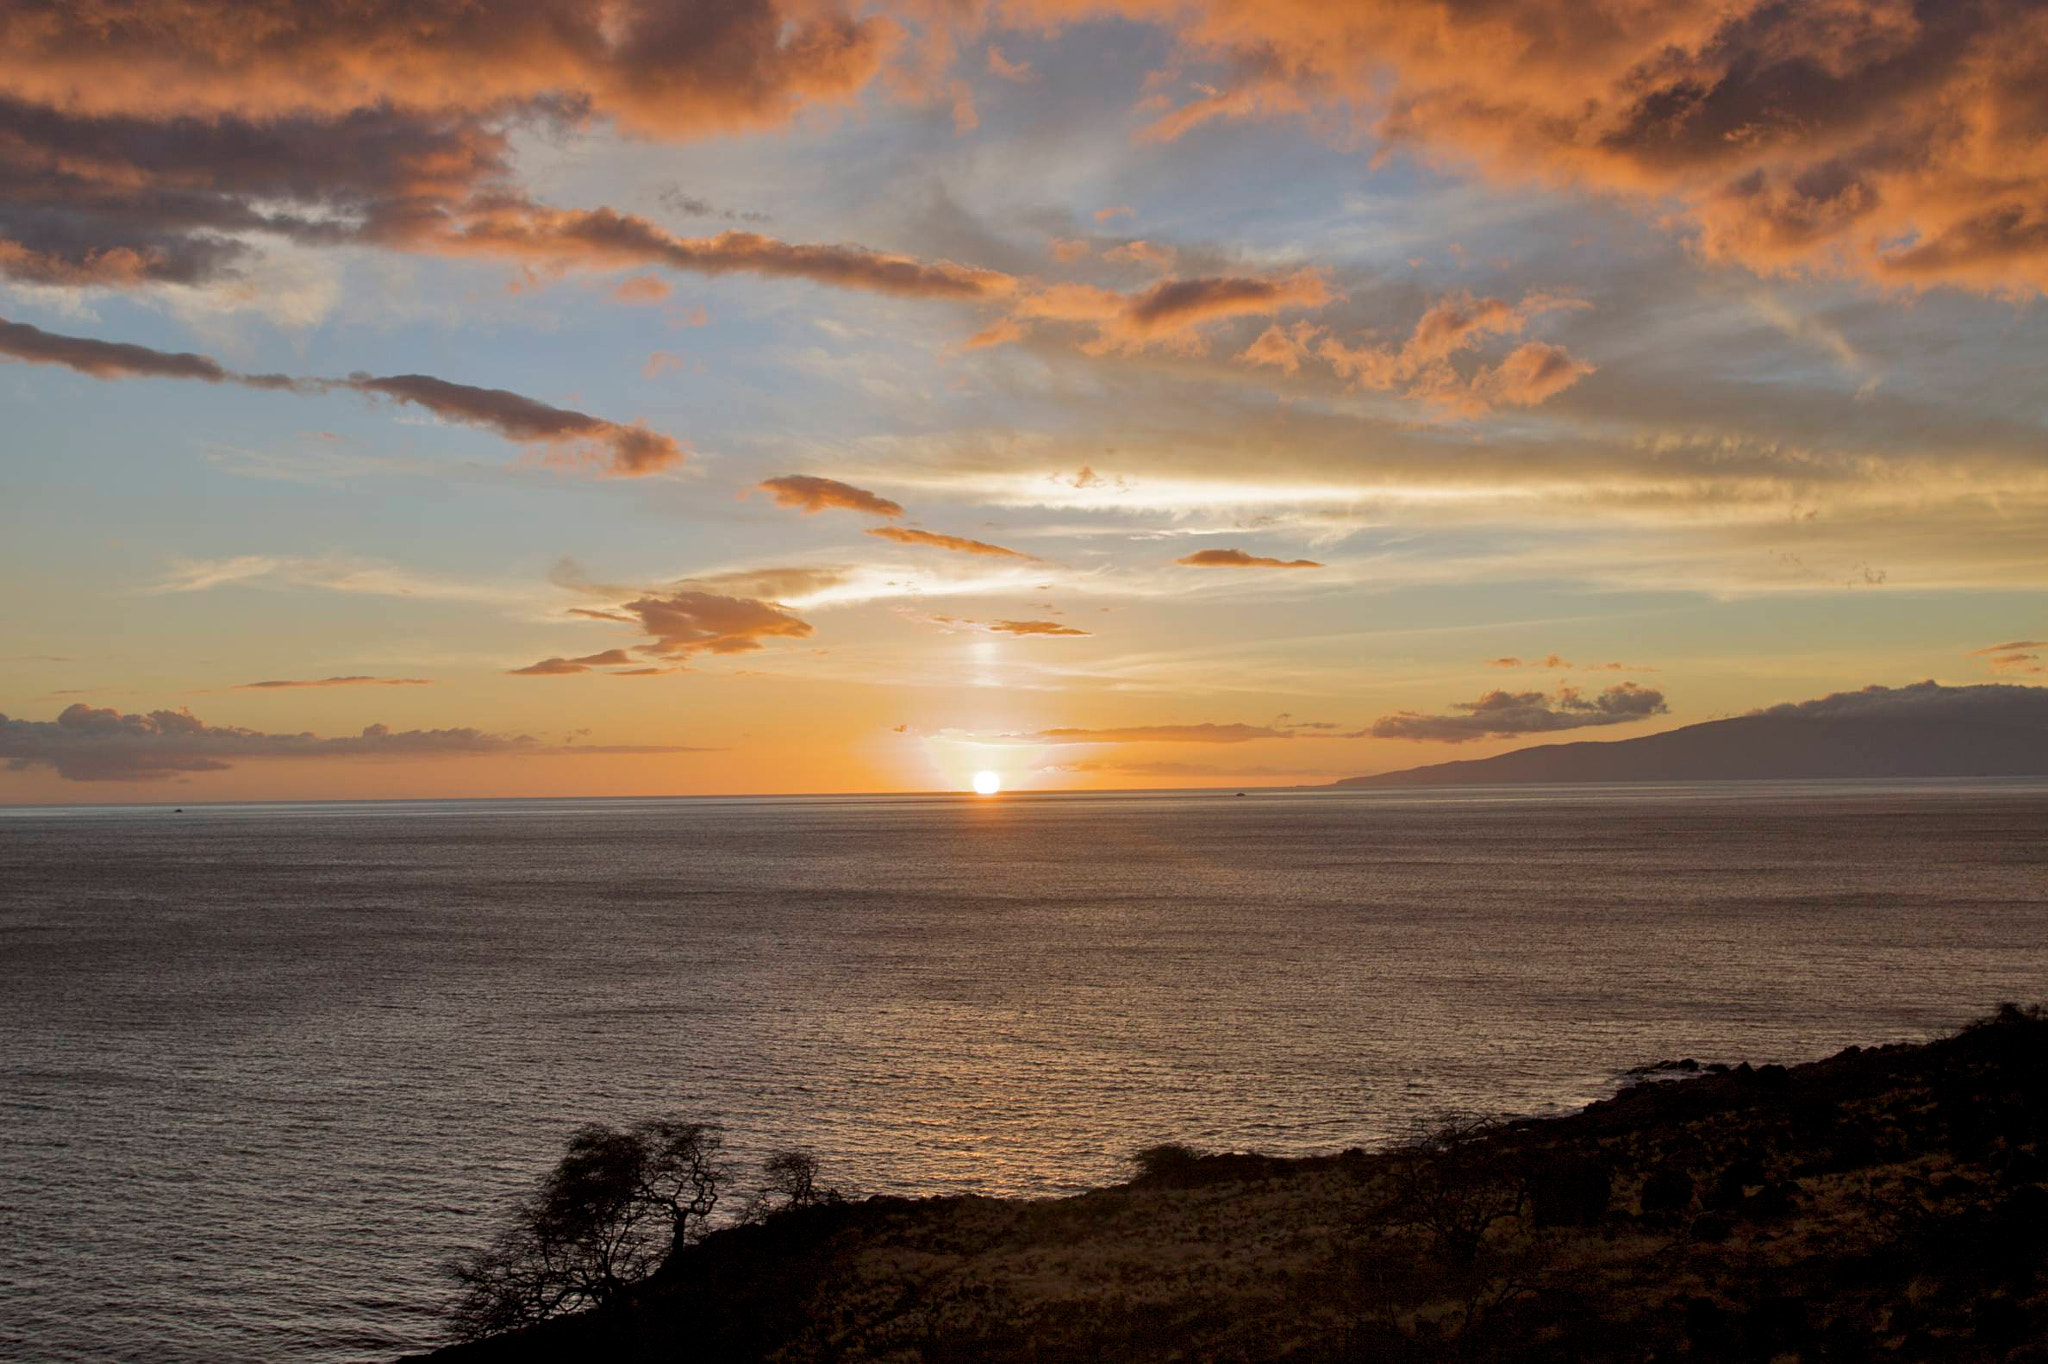 Photograph Maui Sunset by Jim Ranes on 500px